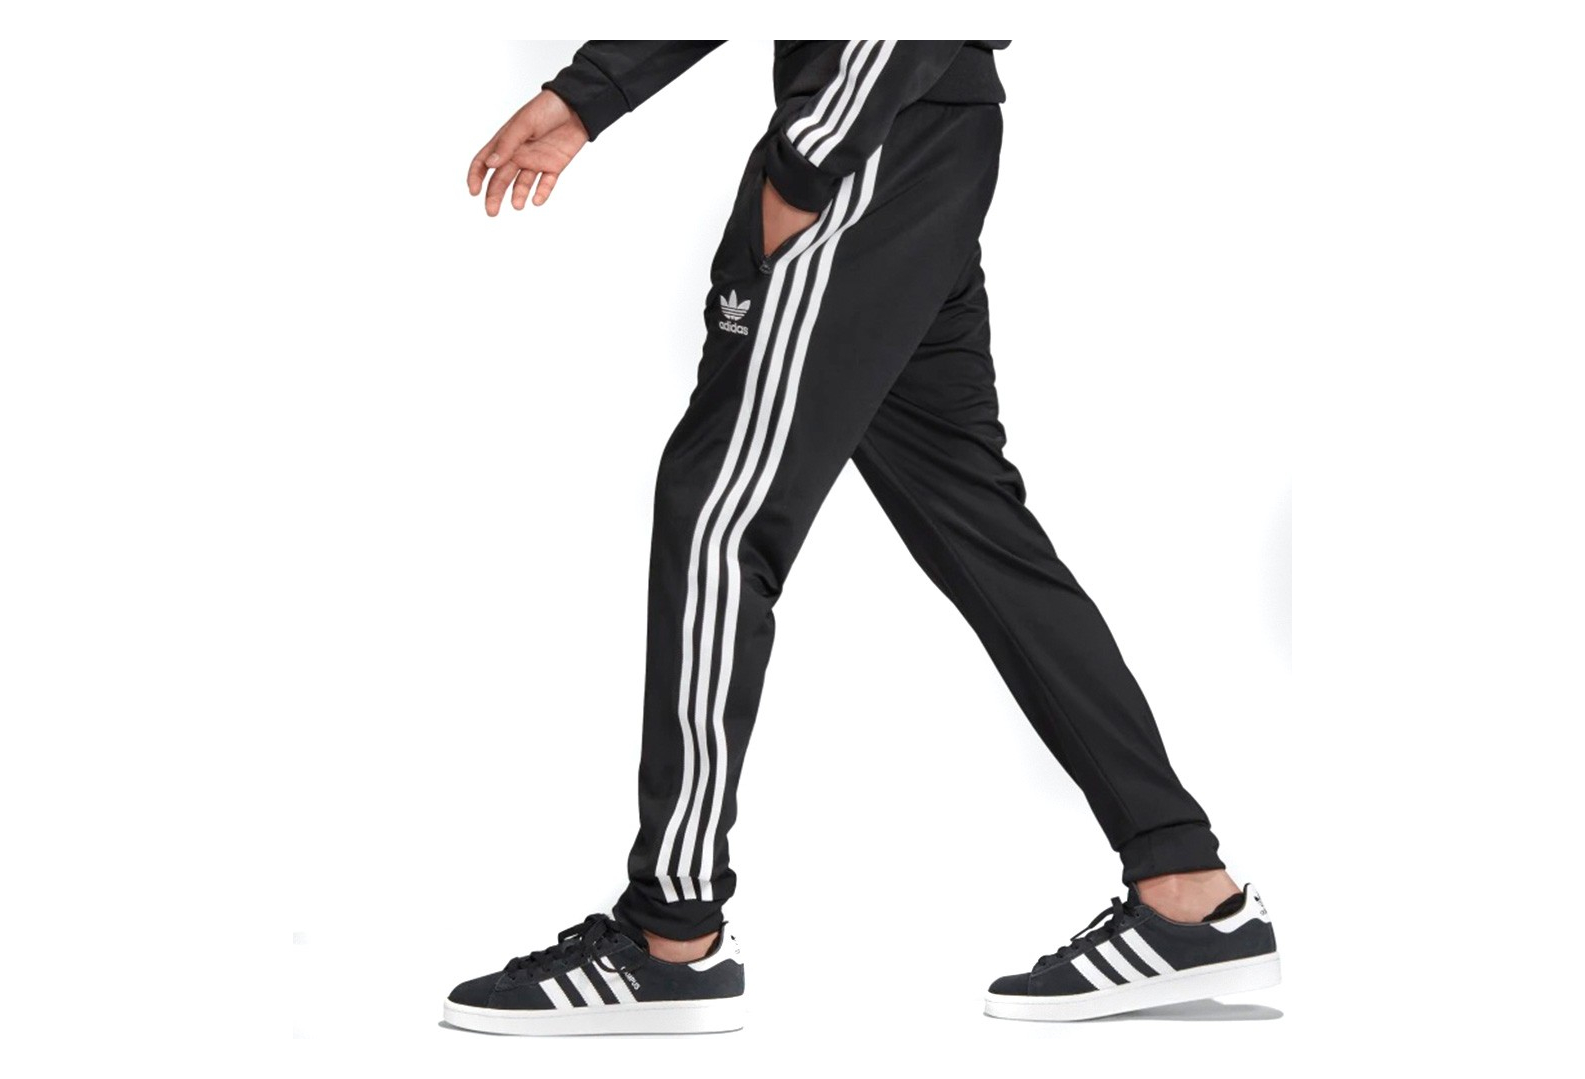 mucho Encadenar carrete  Superstar pantalon noir gar?on adidas | Alltricks.fr